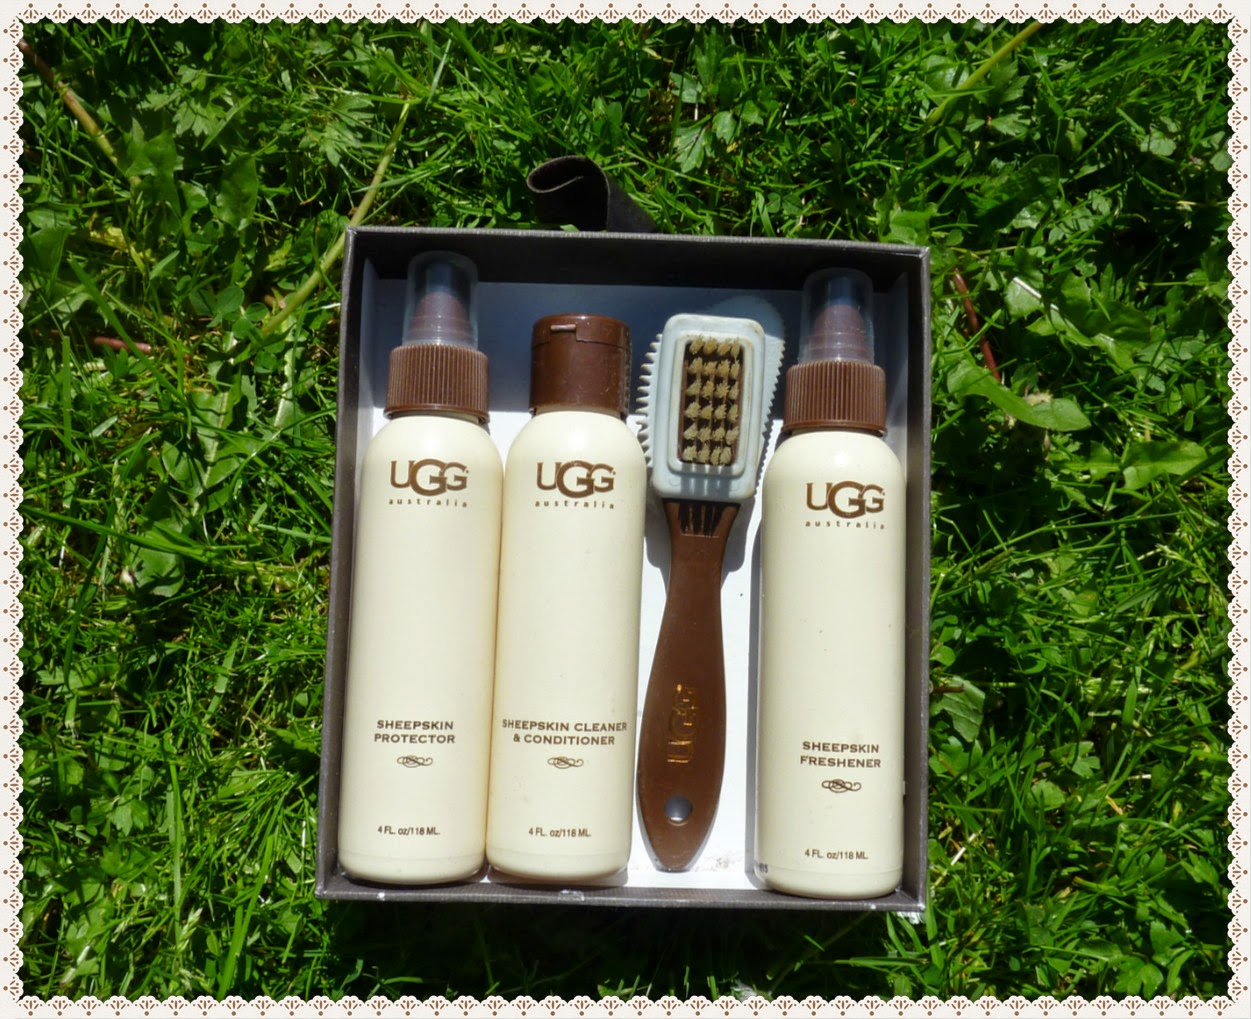 ugg boots preis